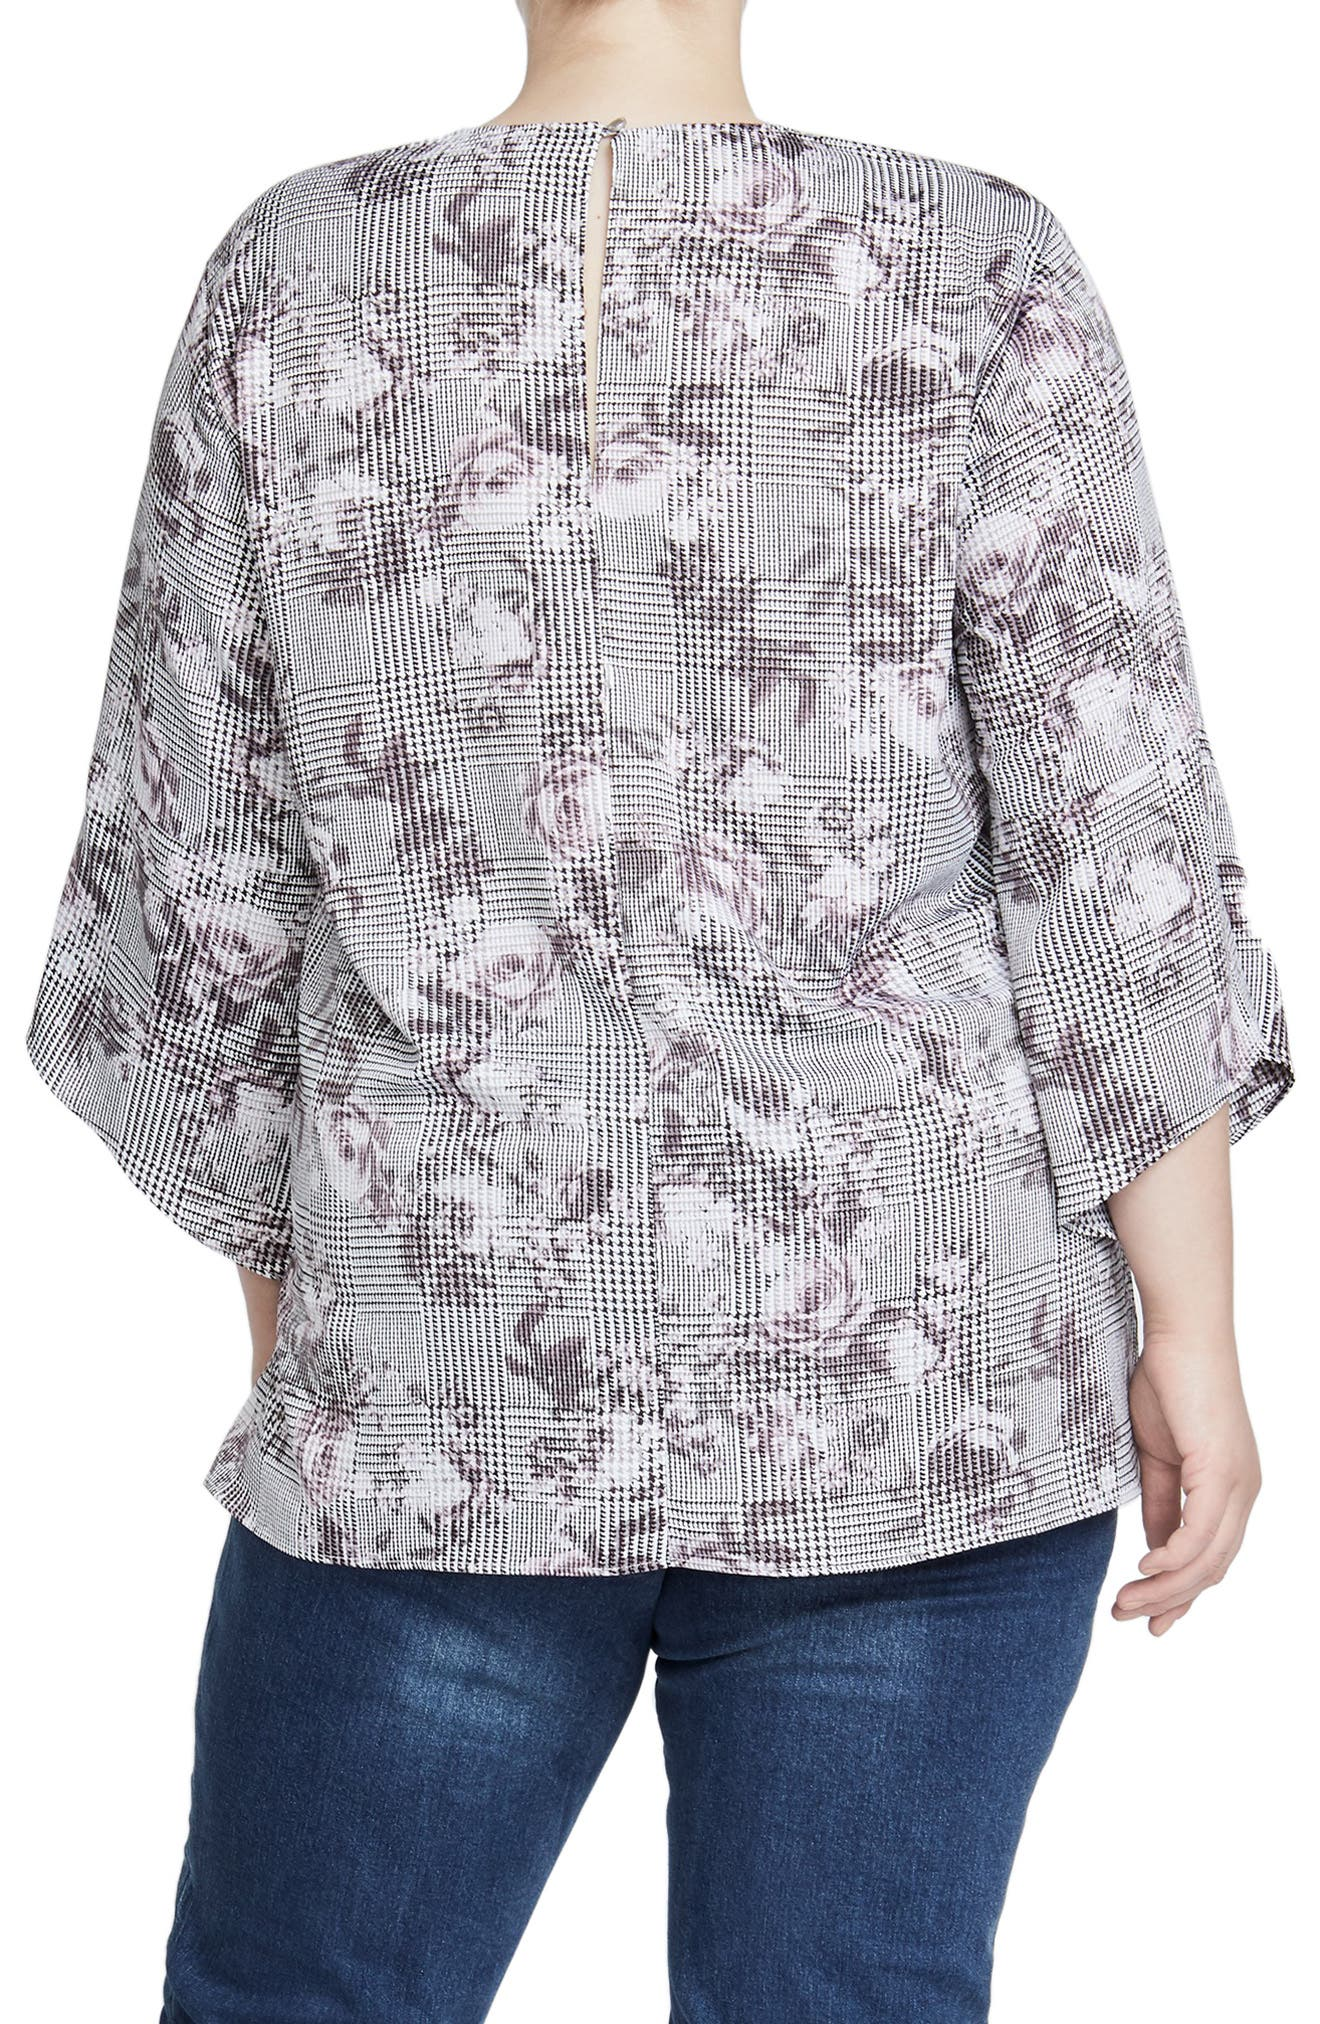 Bell Sleeve Print Top,                             Alternate thumbnail 2, color,                             GREY COMBO